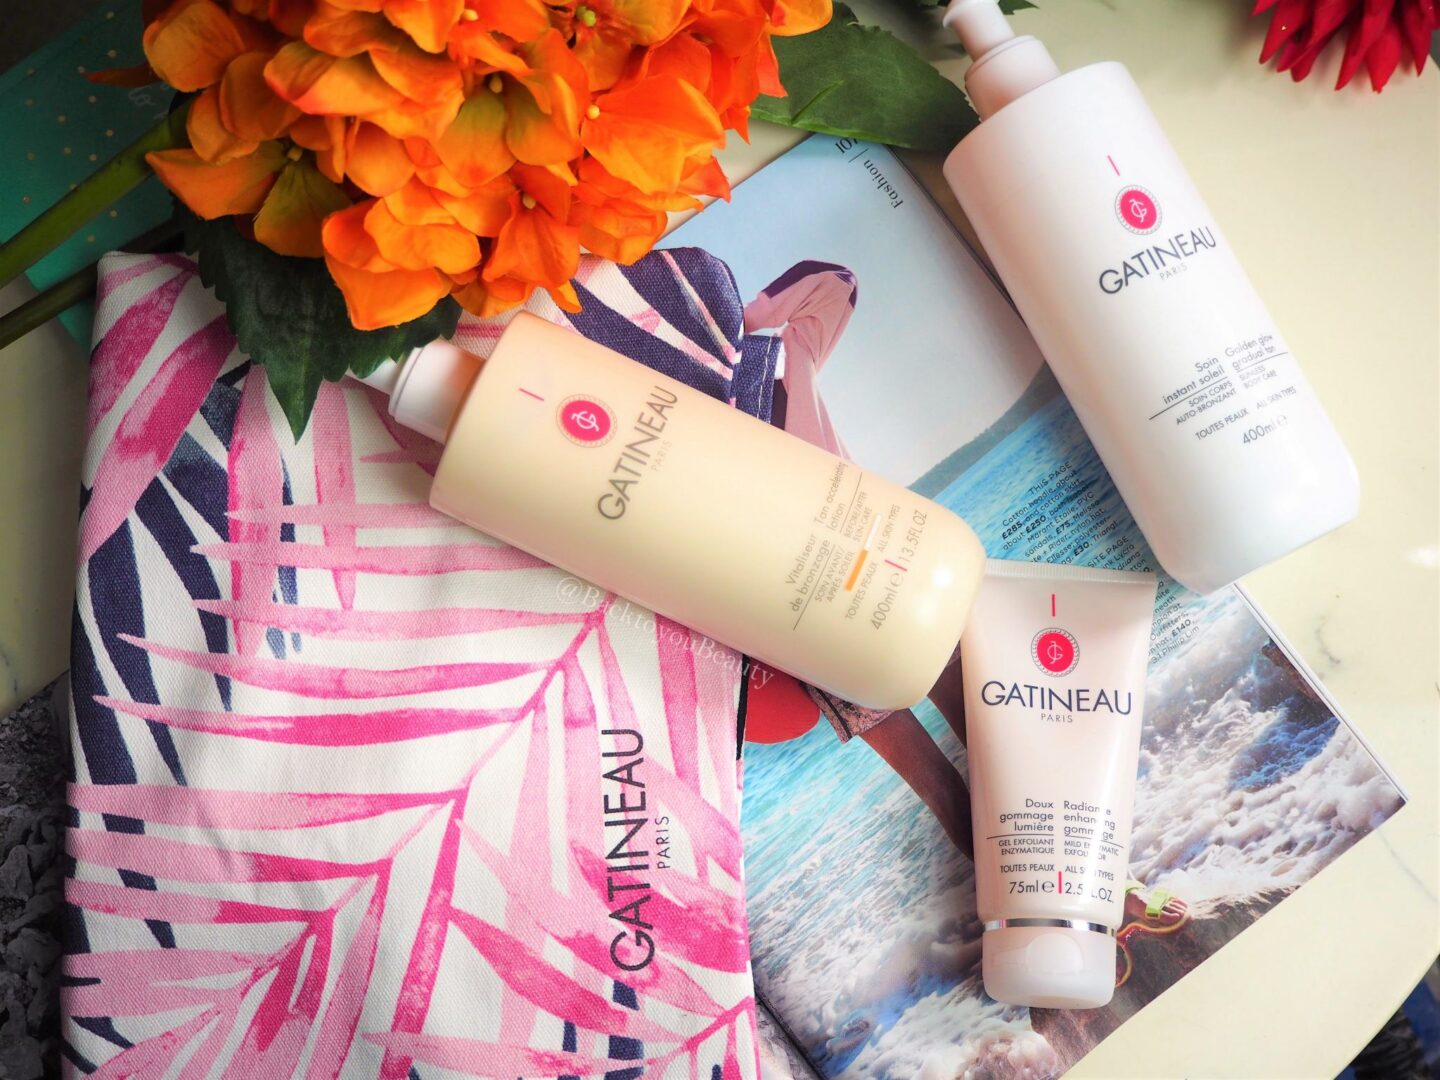 Glow with Gatineau! Radiant Summer Skincare Collection April tsv